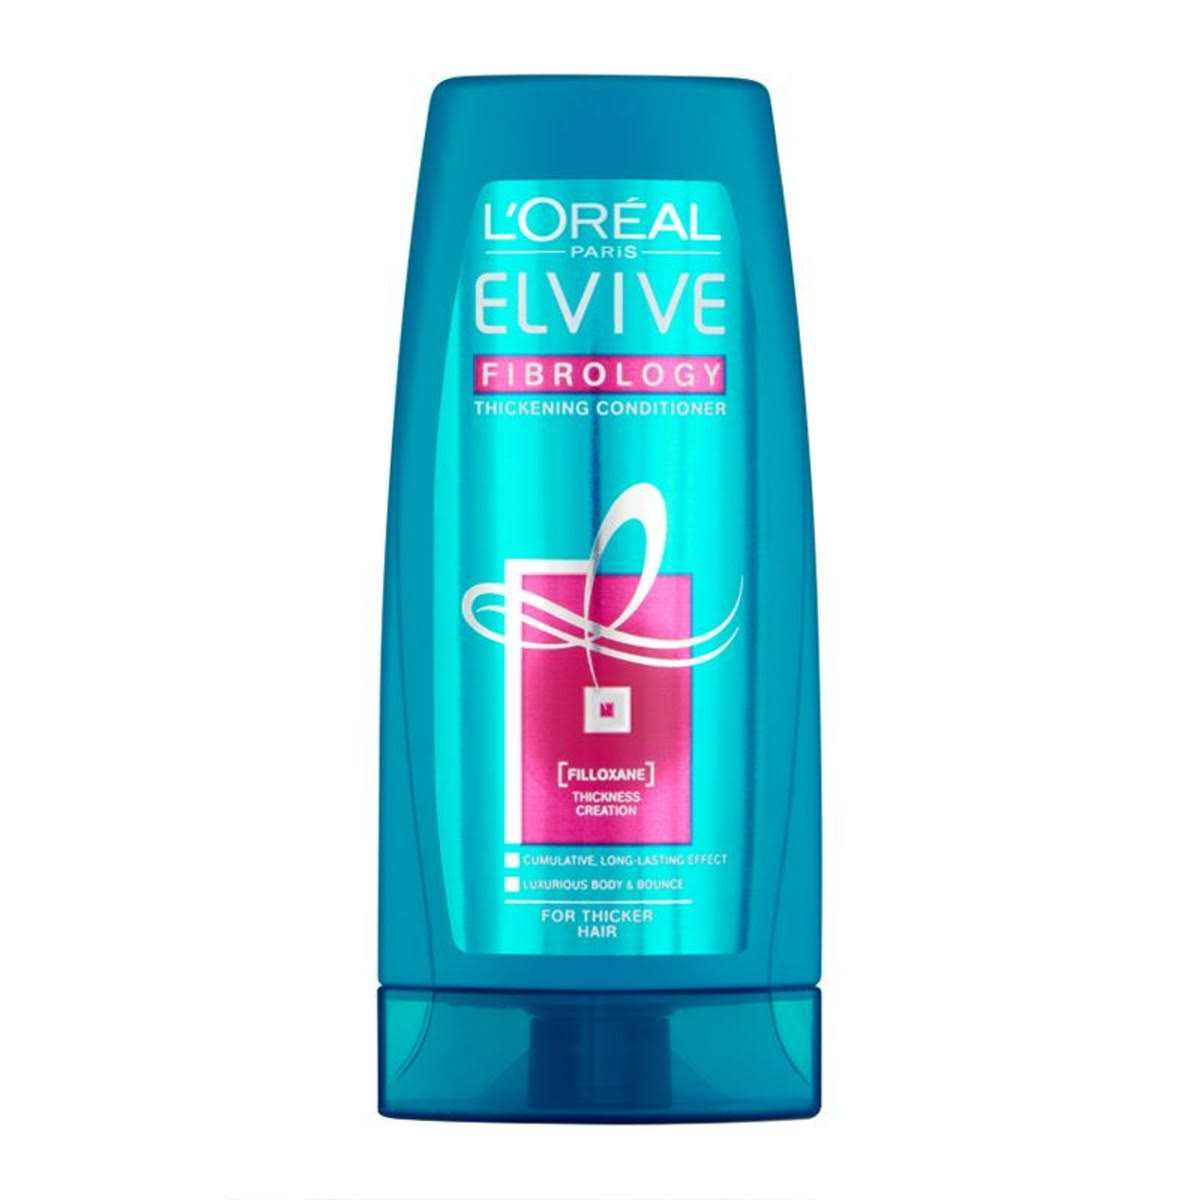 L'Oréal Paris Elvive Fibrology Thickening Conditioner 50ml